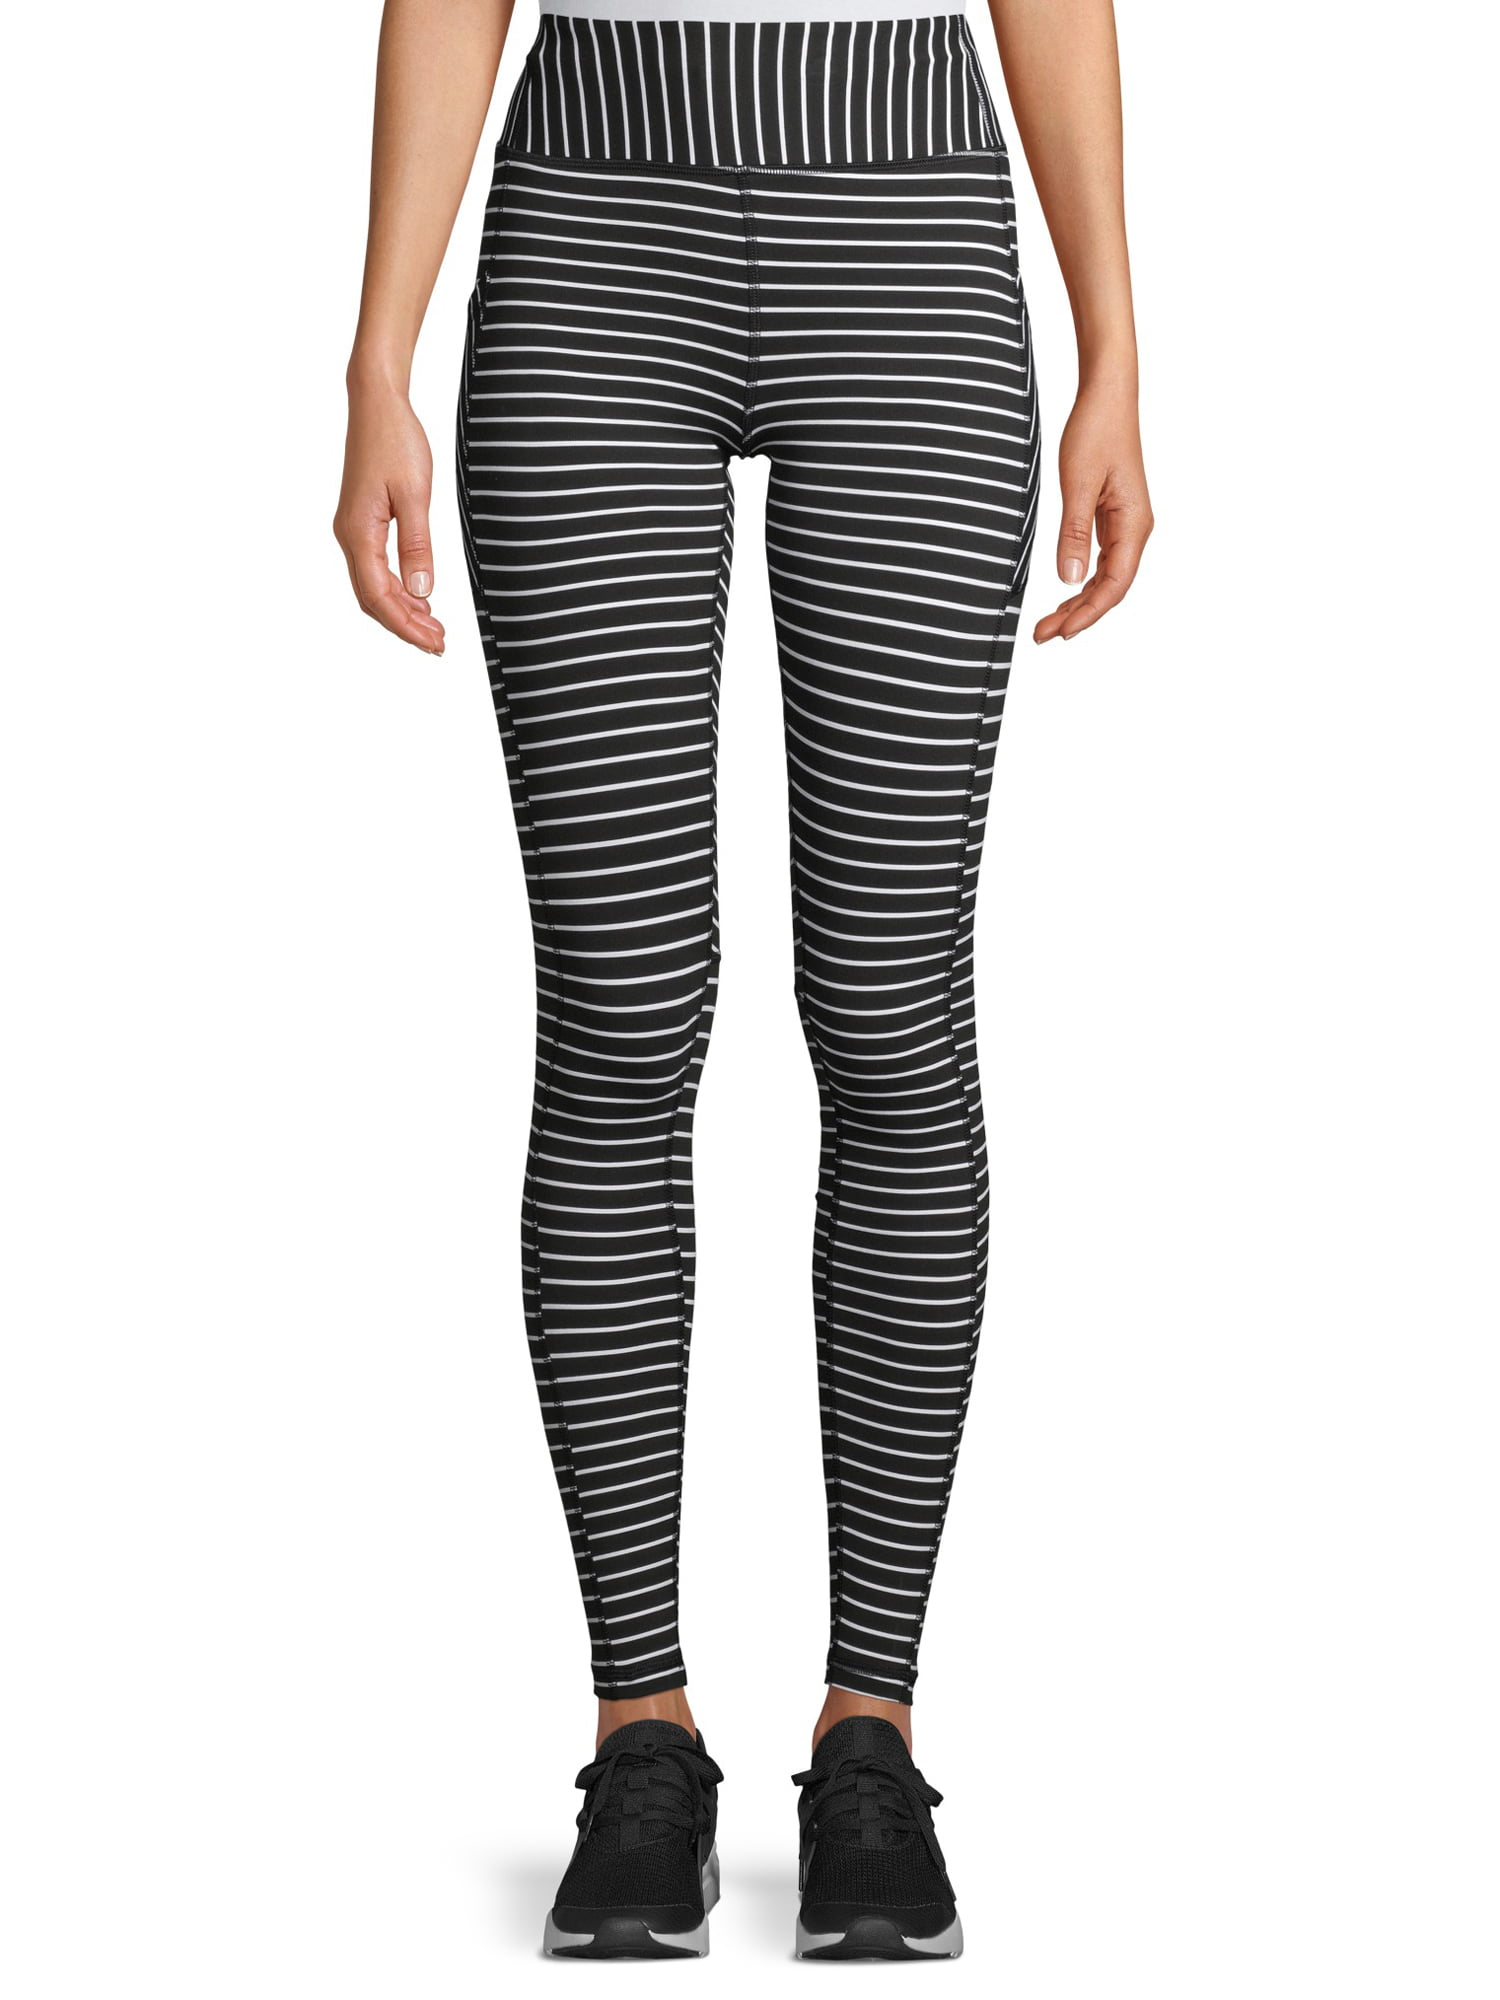 Stripes Leggings Super High Waist Women/'s Ladies Black /& White Legging Pants